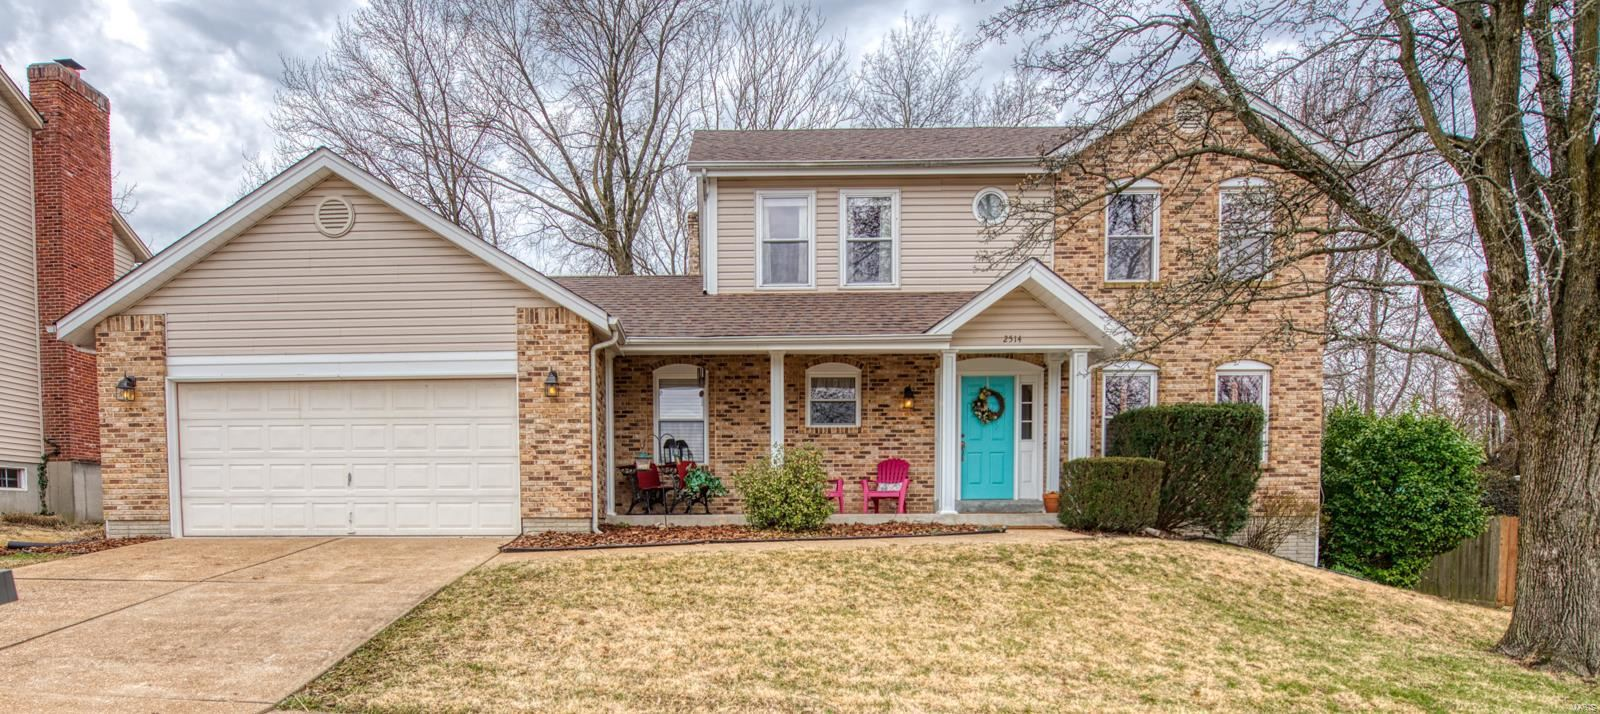 2514 Willow Knoll Drive, Saint Louis, MO 63129 - MLS#: 20012434